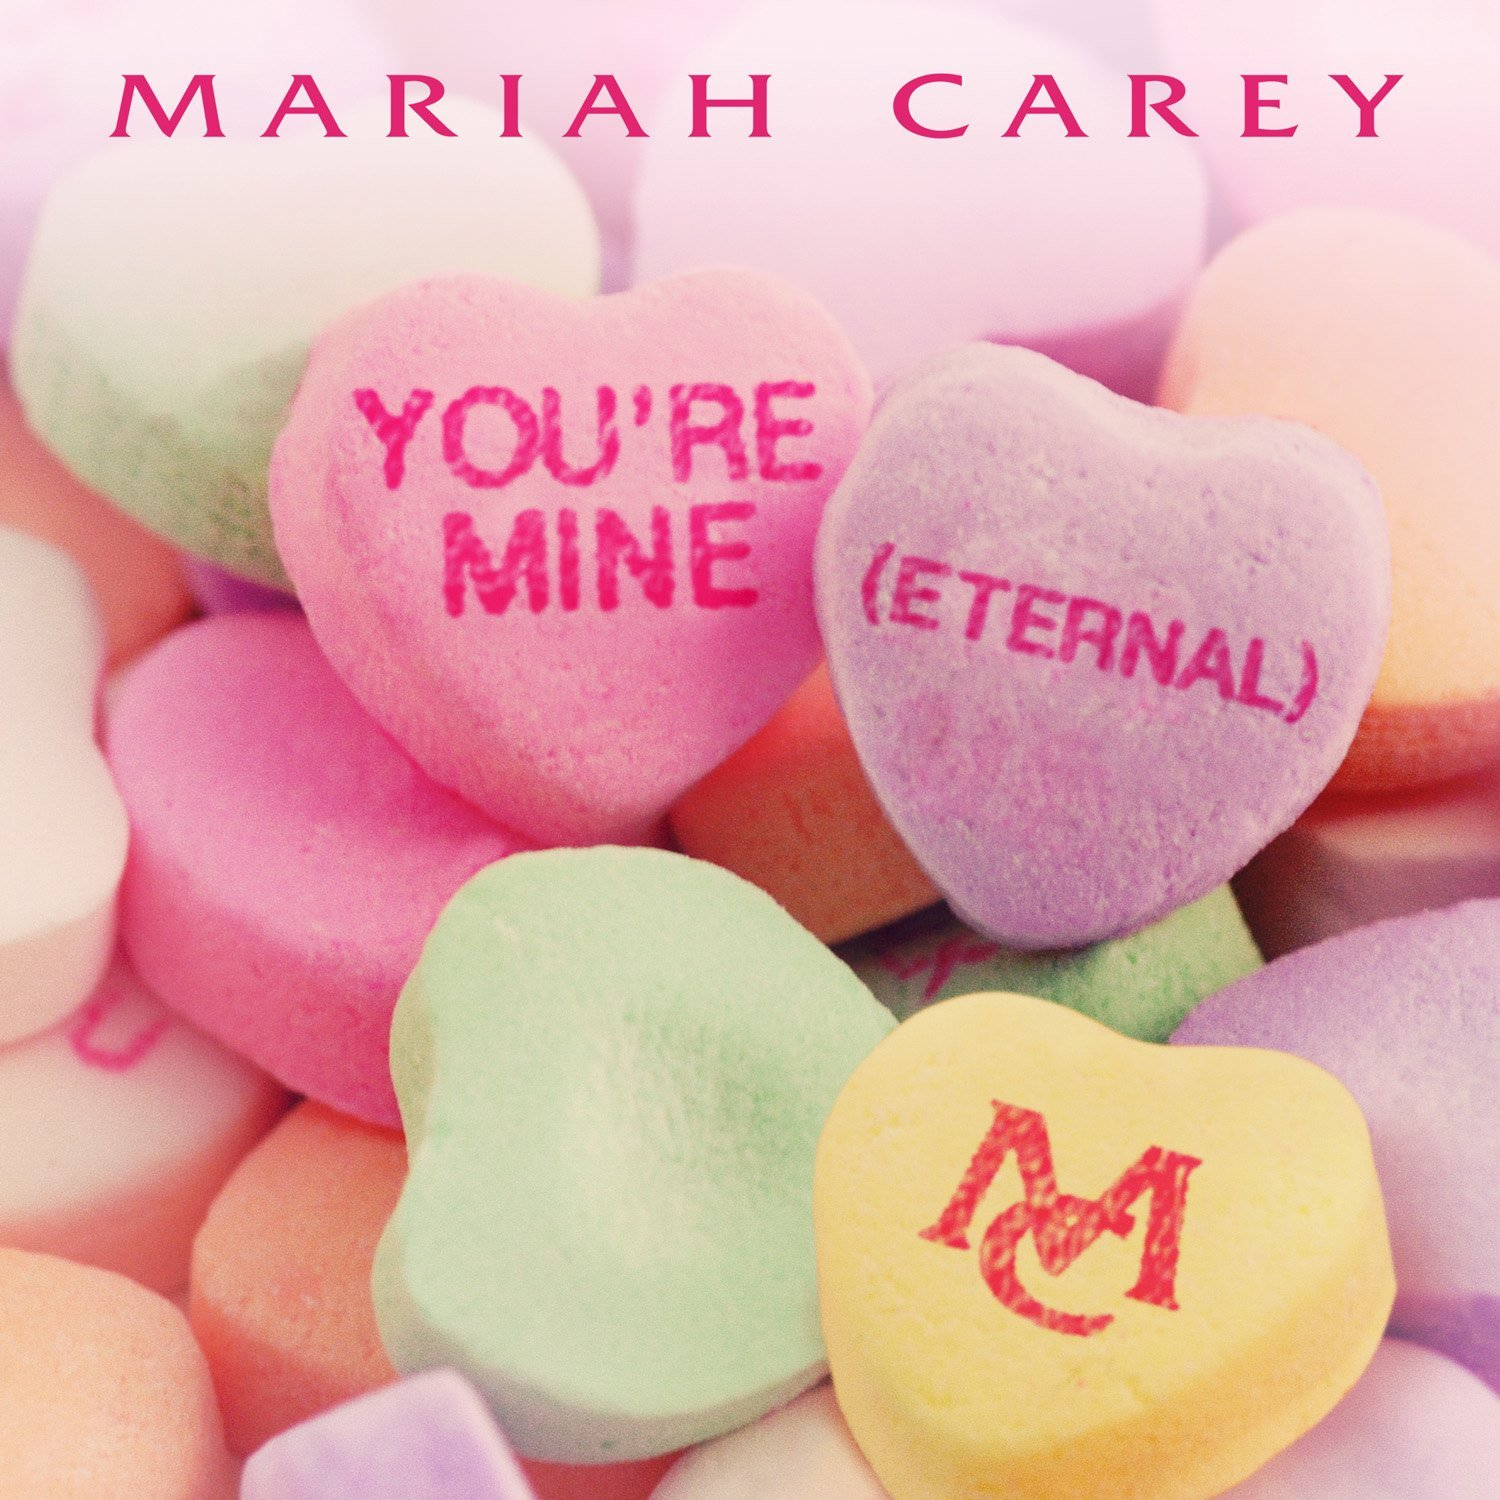 mariah-carey-youre-mine-eternal-single-cover-art